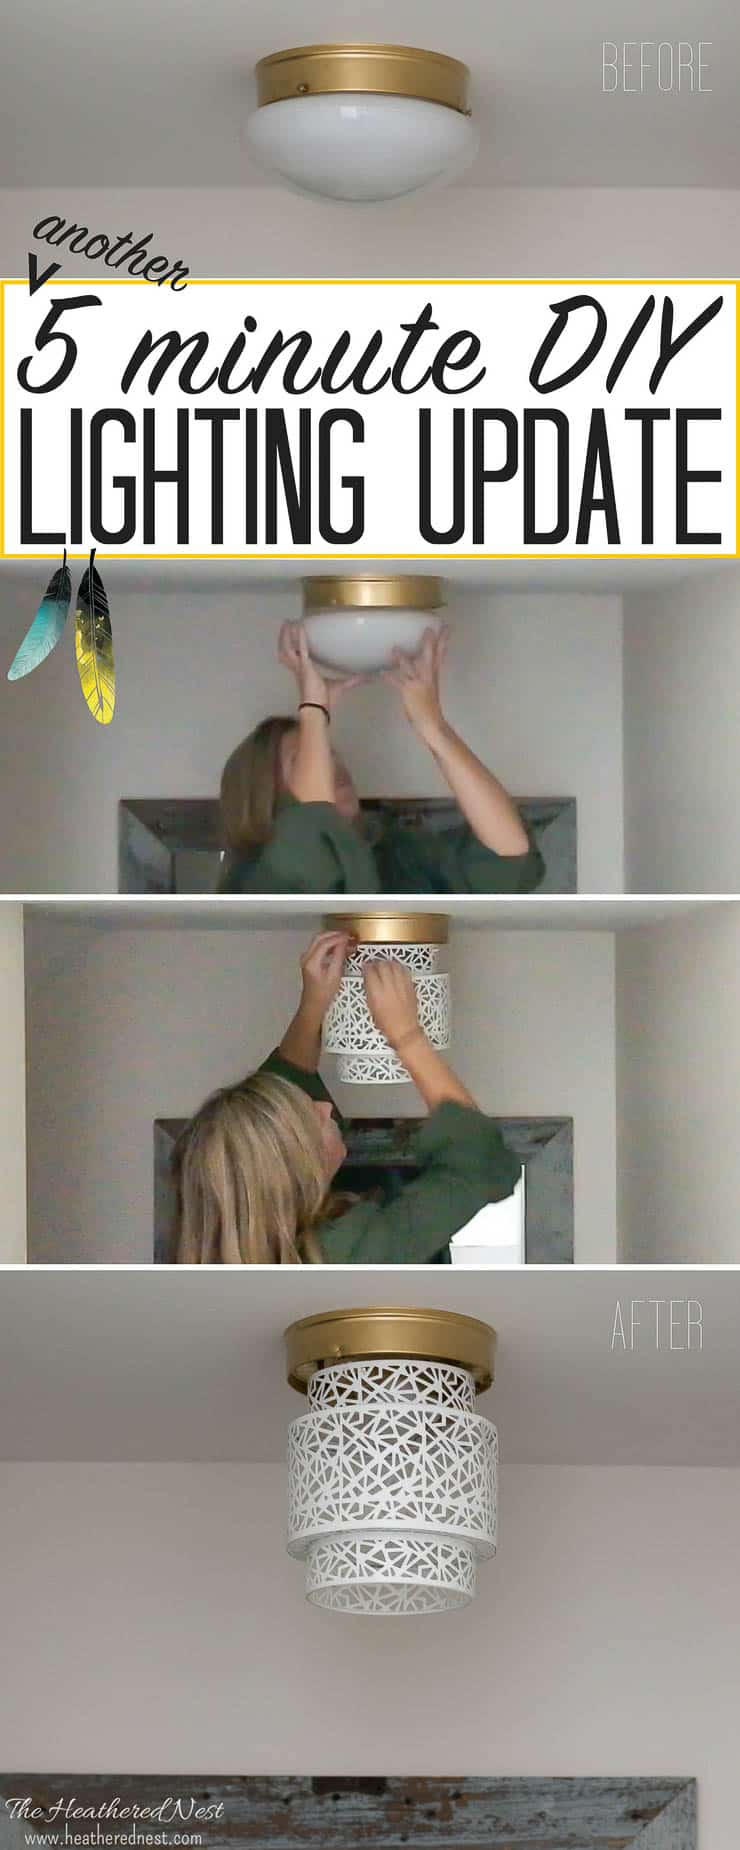 Unbelievable...and what a great idea for renters, too! Try this 5-minute, NO TOOLS needed boob light makeover using a woven basket from the Heathered Nest! Amazing way to update that dated flush mount ceiling lighting! #DIY #lighting #homehack #booblight #DIYlighting